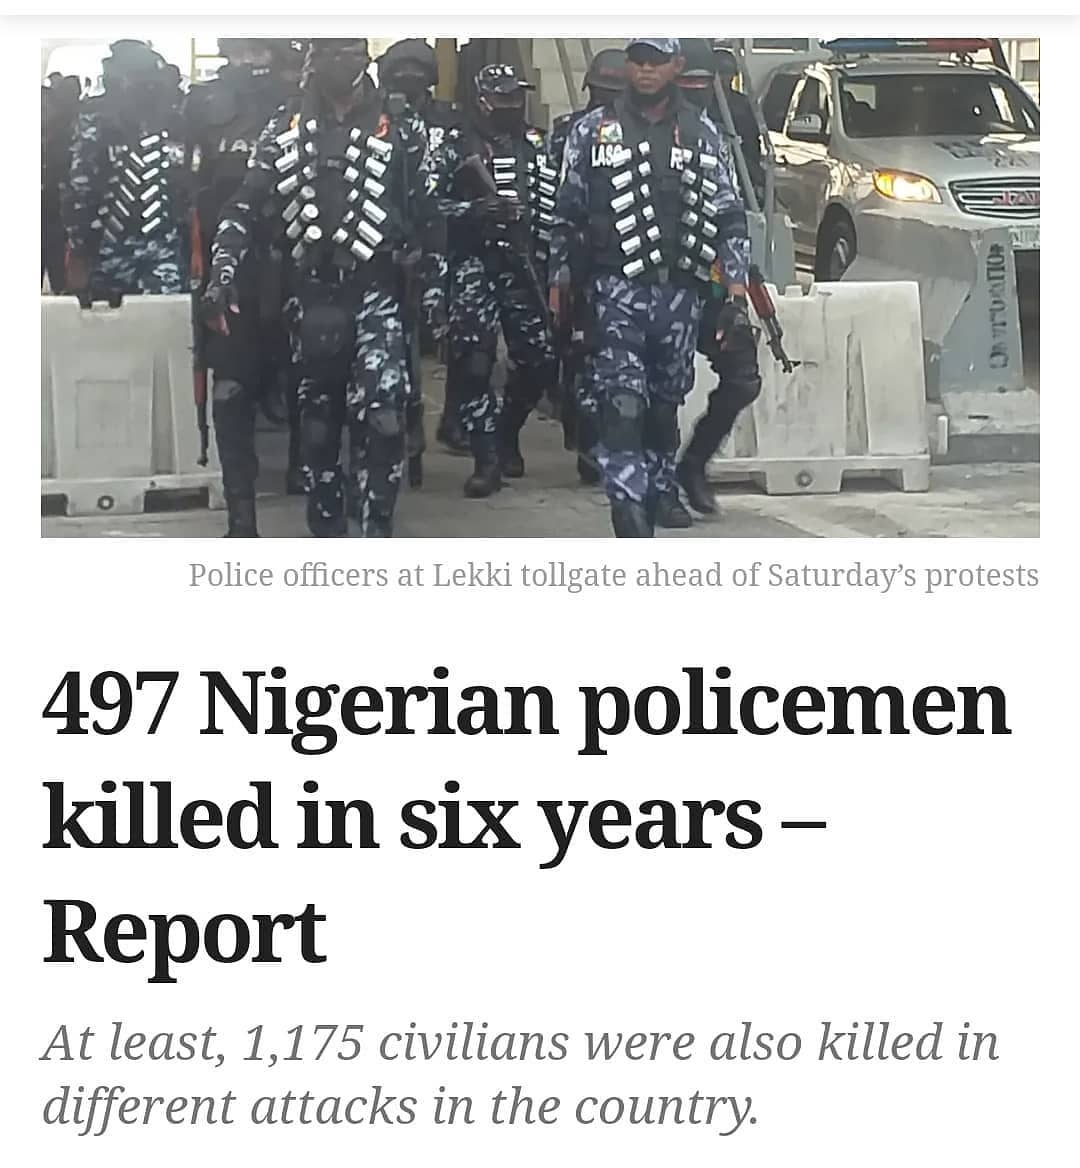 No fewer than 497 police officers were killed in different attacks across Nigeria in the last six years, a report has said.  It also said at least, 1,175 civilians were also killed in different attacks in the country.  The report by SBMorgen, a Lagos-based intelligence platform, covered the period between January 7, 2015 and March 22, 2021, about 75 months.  According to the report, sent to PREMIUM TIMES, the 497 police officers and men were killed in 554 incidents across the country during the period.  The group, which based its data on reported incidents, said its findings were corroborated by at least two different media sources across the six geopolitical zones in the country.  The figures arguably underscored the extension of the mind boggling cases of insecurity in Nigeria in recent years.  Zonal analysis  SBMorgen said, of all the six geopolitical zones in the country, the South-south region tops the chart with 163 incidents that sent 174 policemen to their early graves during the years under review.  It said 51 policemen were killed in Delta State alone within the period, making the state the highest among the six states in the region.  Akwa Ibom State recorded 11 deaths within the 75 months.  The North-central zone trailed the South-south zone having recorded 85 deaths of police officers out of the 88 reported attack incidents in the zone.  In the geopolitical zone, Benue recorded the highest number with the killing of 22 police officers during the 16 reported incidents during the period under review. The state witnessed herders-farmers clashes during most of the 75 months.  It is followed closely by Kogi which recorded the deaths of 19 police personnel in 49 violent attacks.  Kwara State, the report said, recorded two deaths out of the three cases reported in the state.